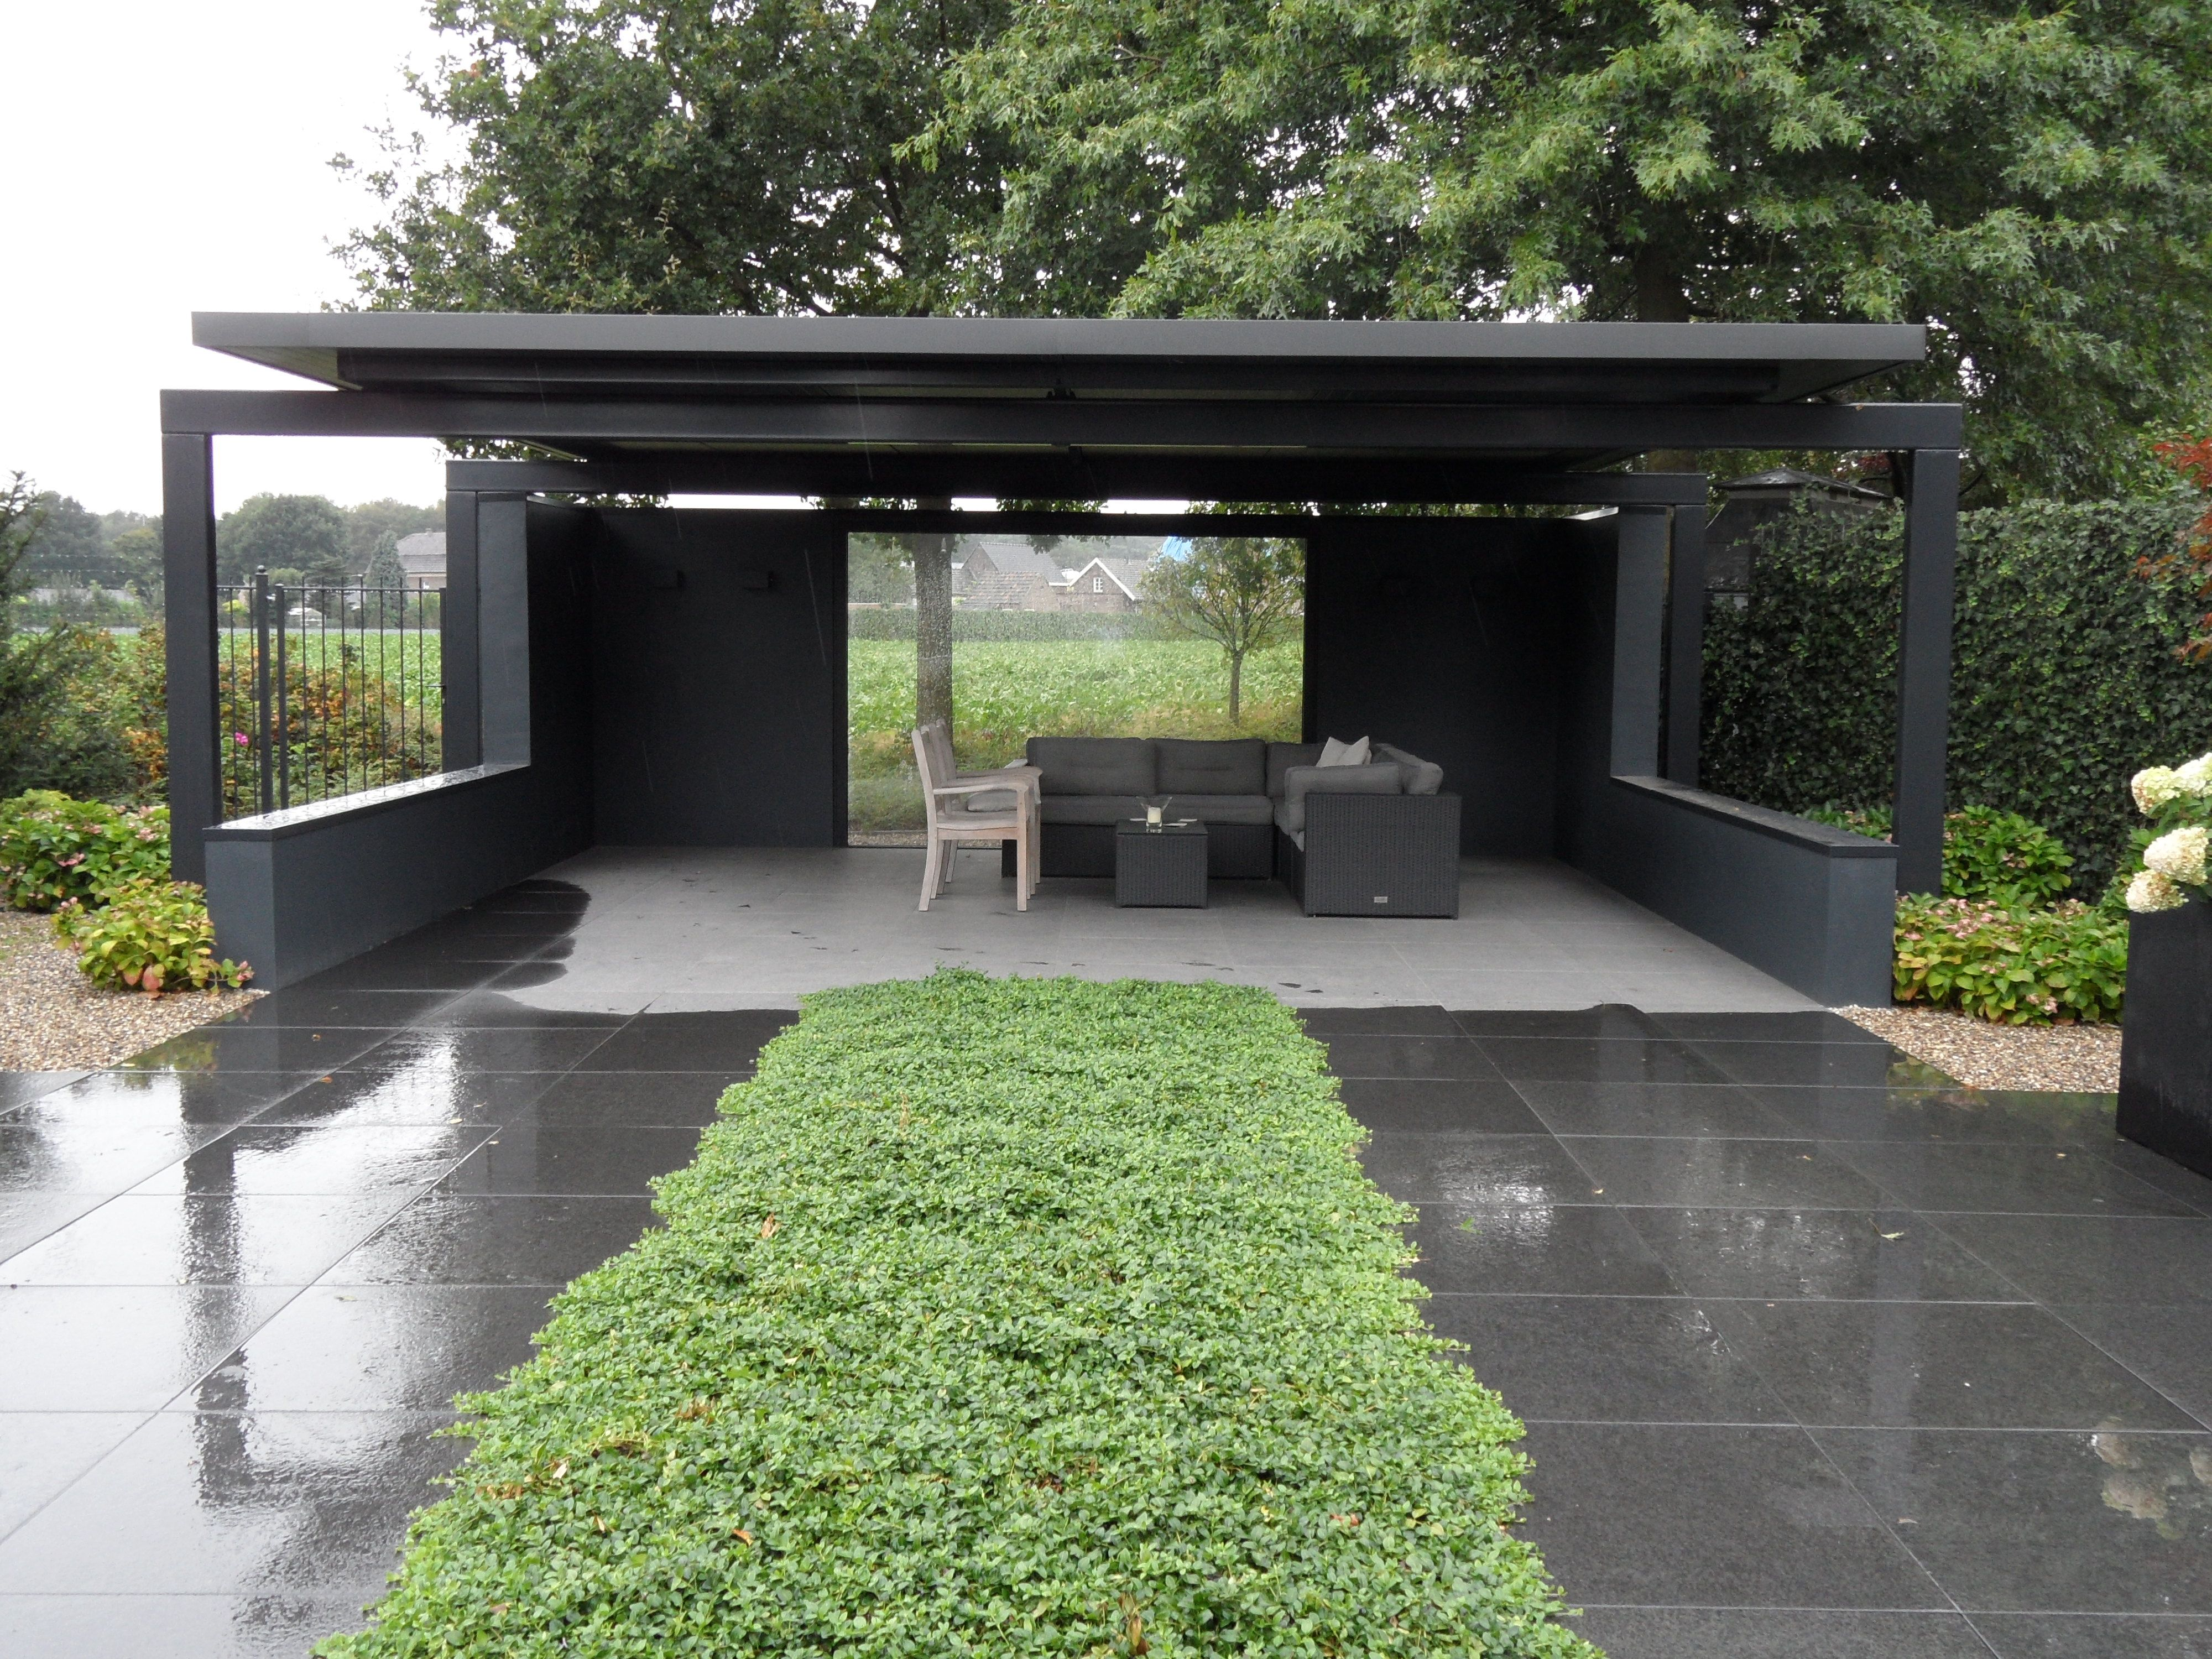 1000 images about metal pergolas on pinterest - Modern prieel aluminium ...